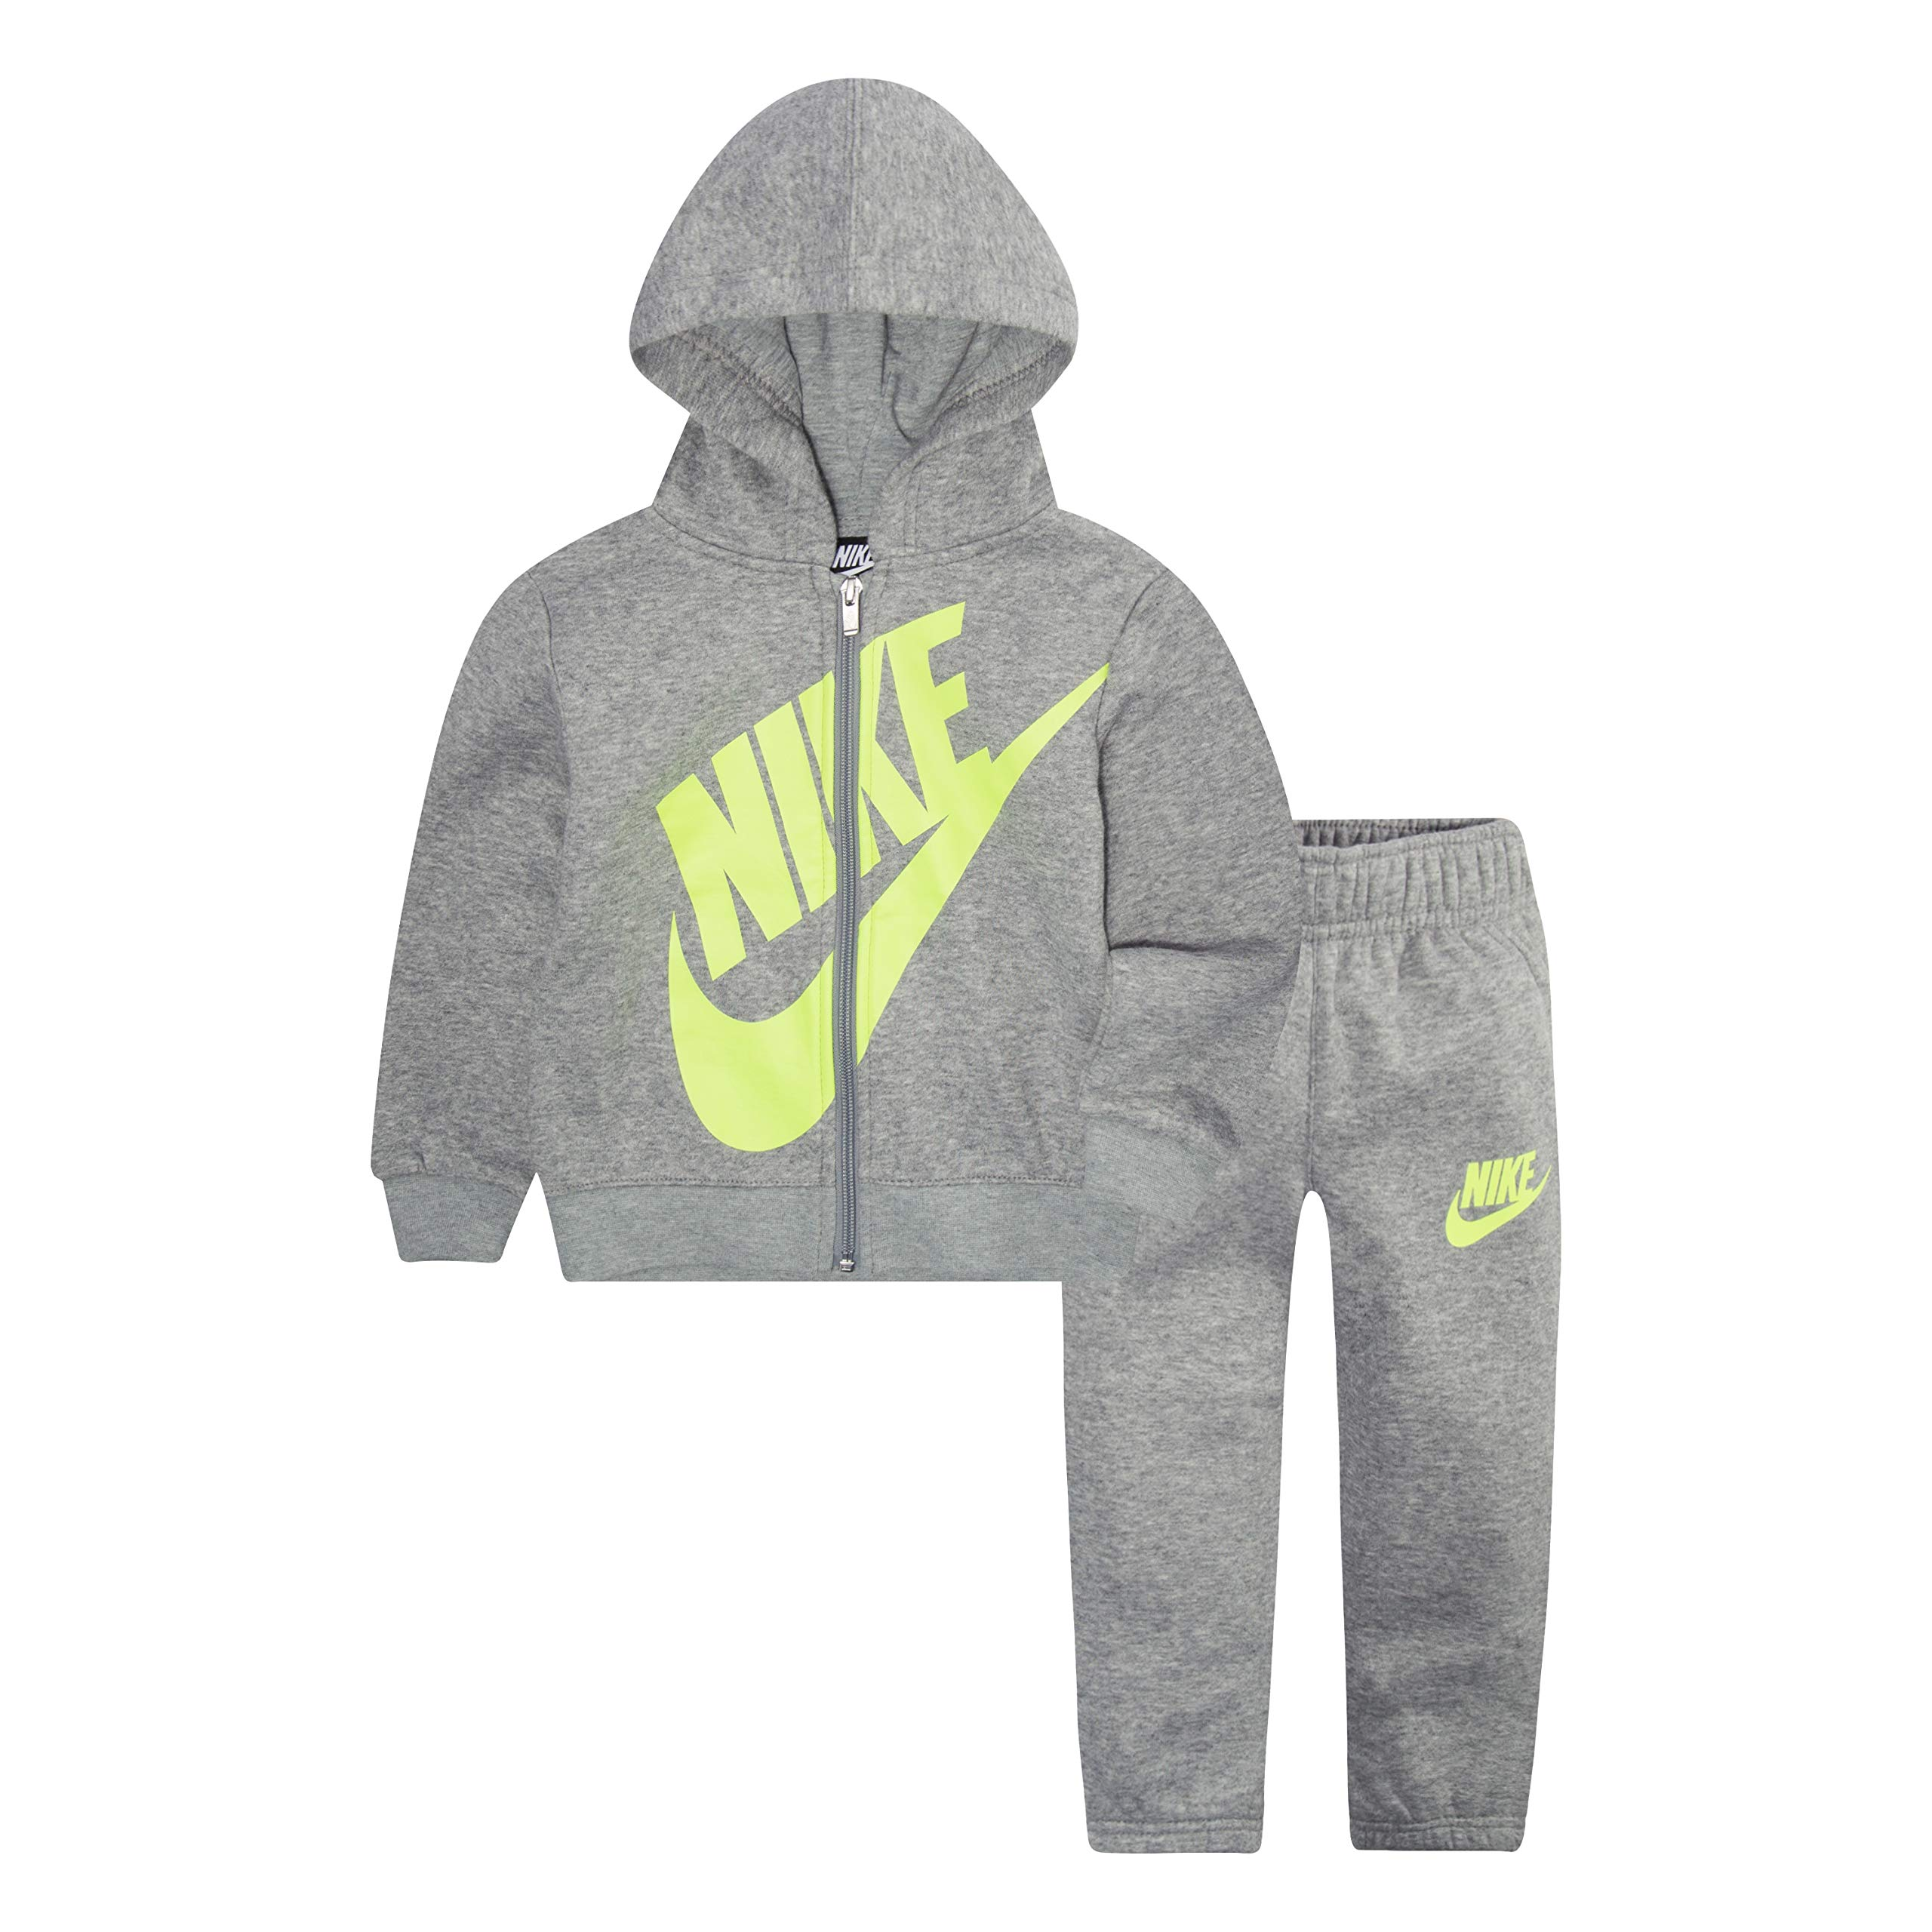 NIKE Children's Apparel Baby Boys' Toddler Hoodie and Joggers 2-Piece Outfit Set, Dark Grey Heather/Volt, 3T